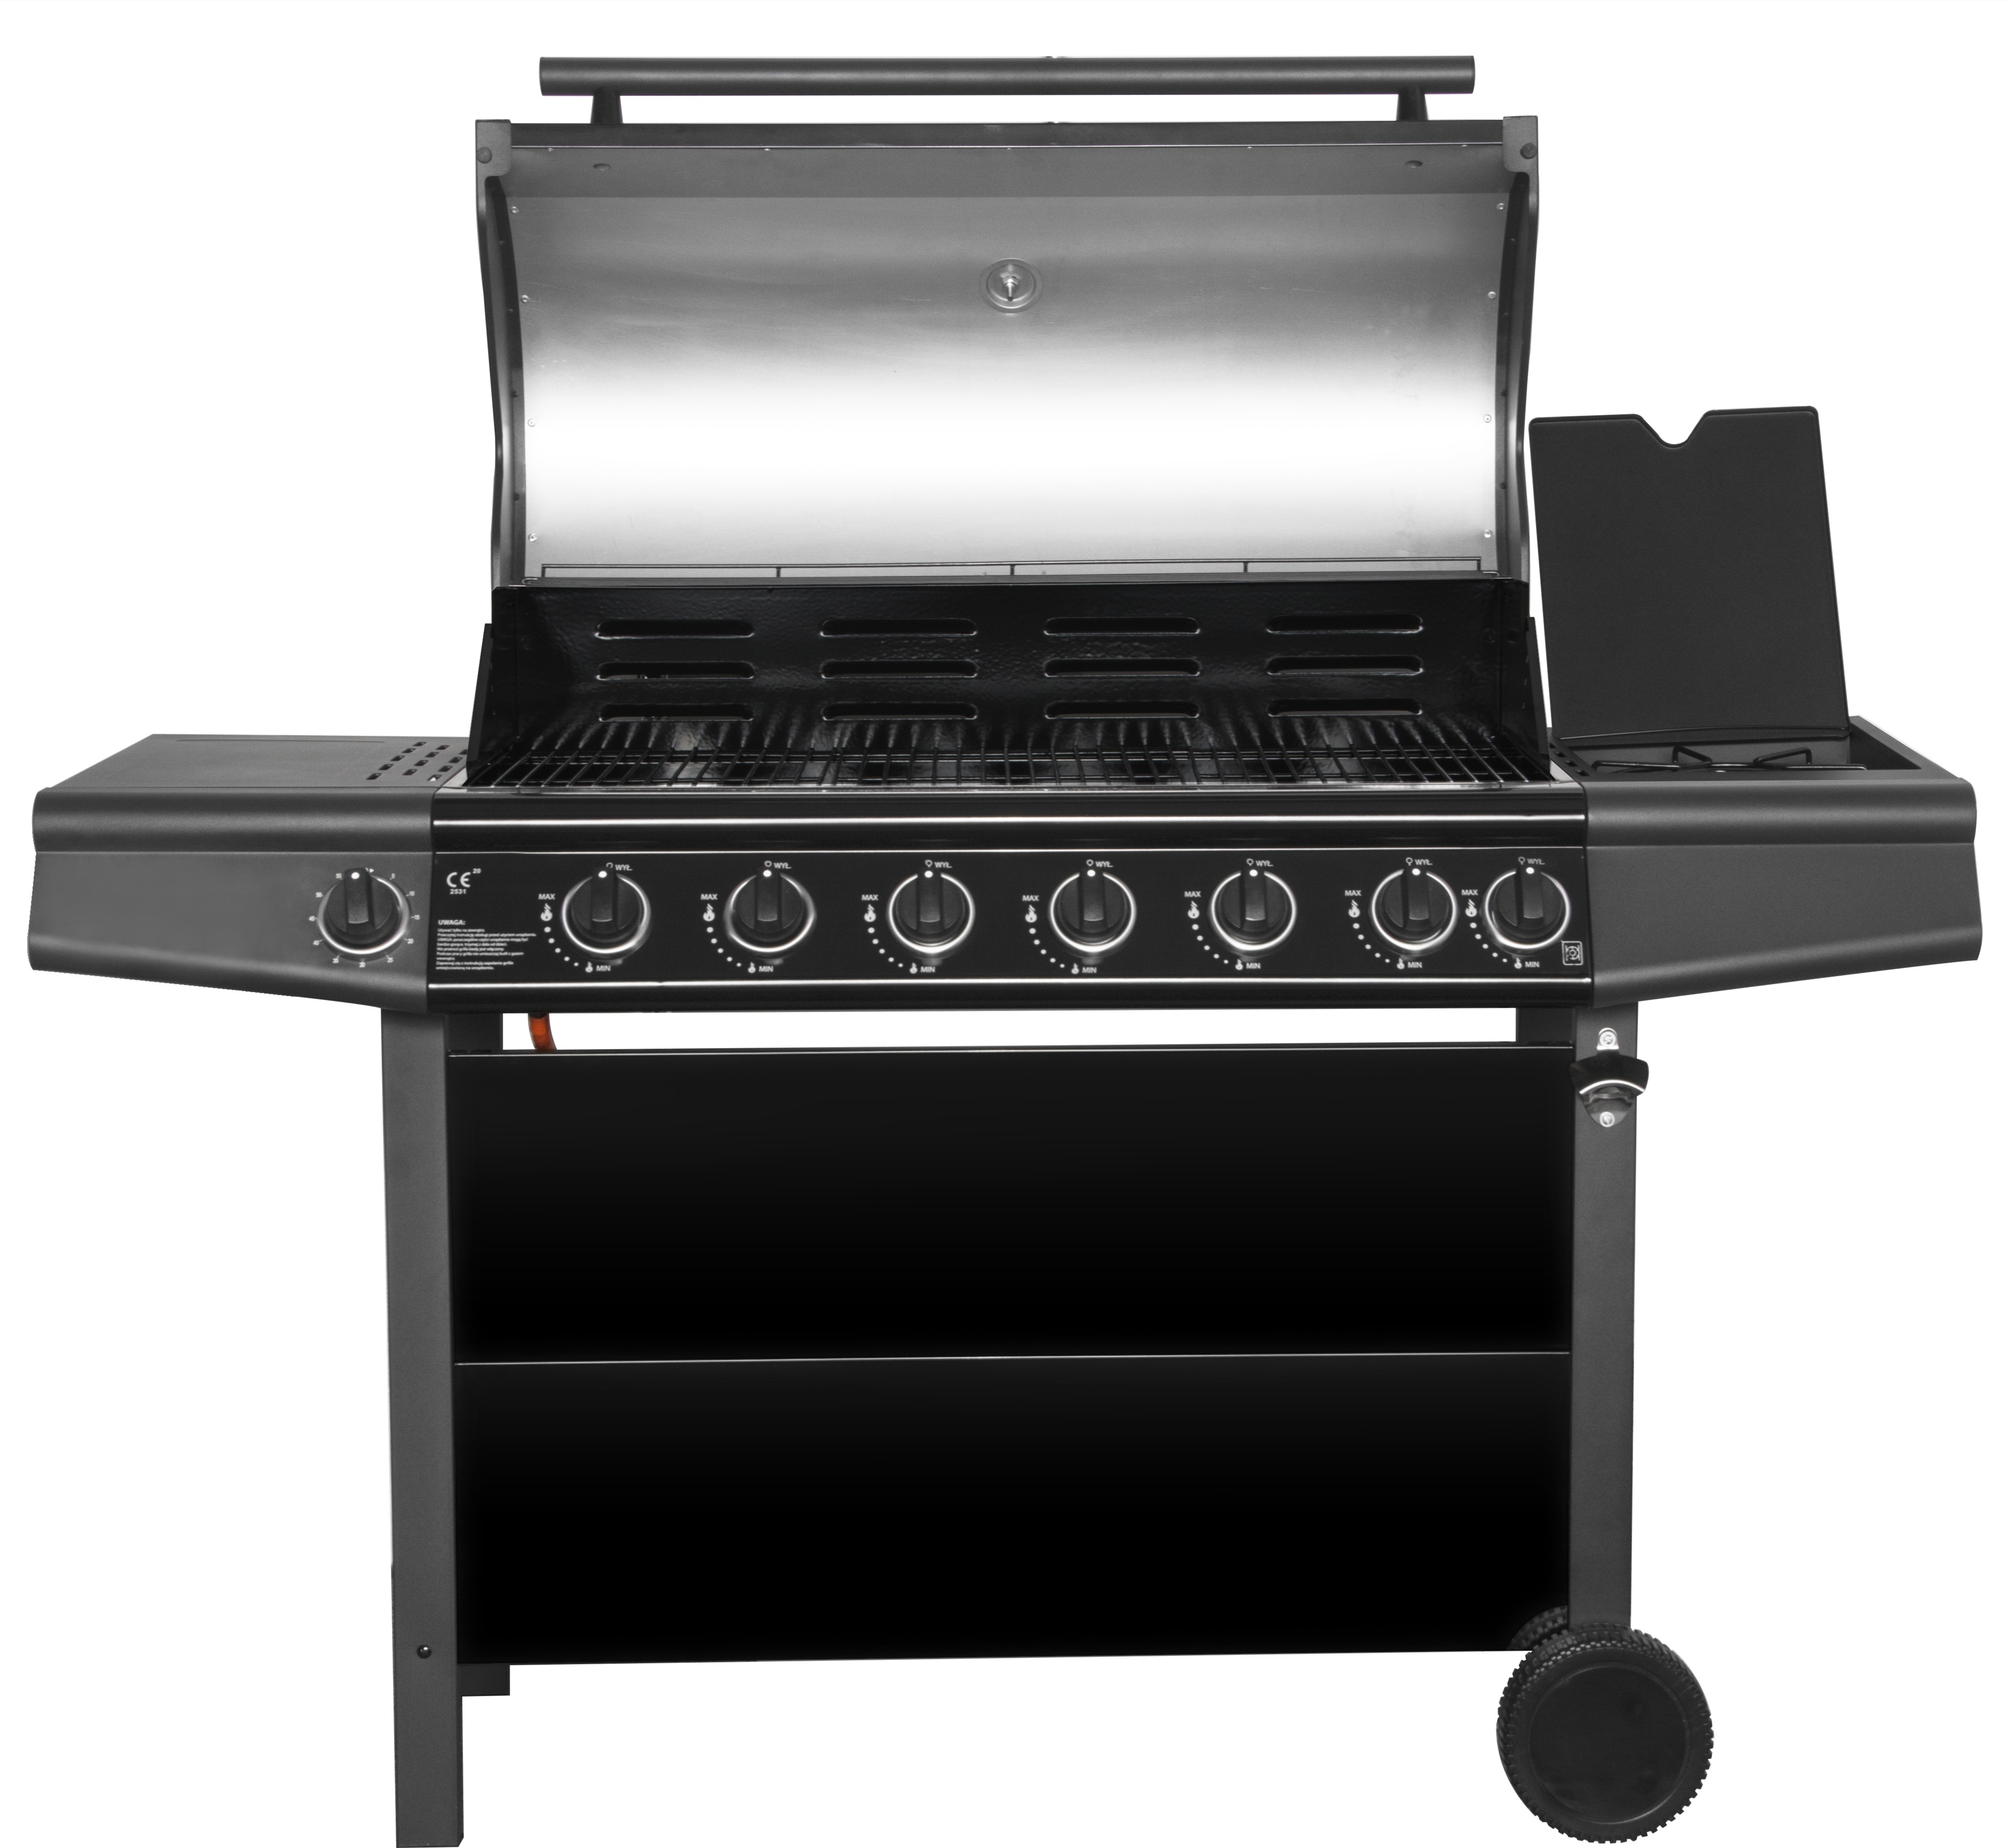 6 Burner Patio Gas Barbecue Grill